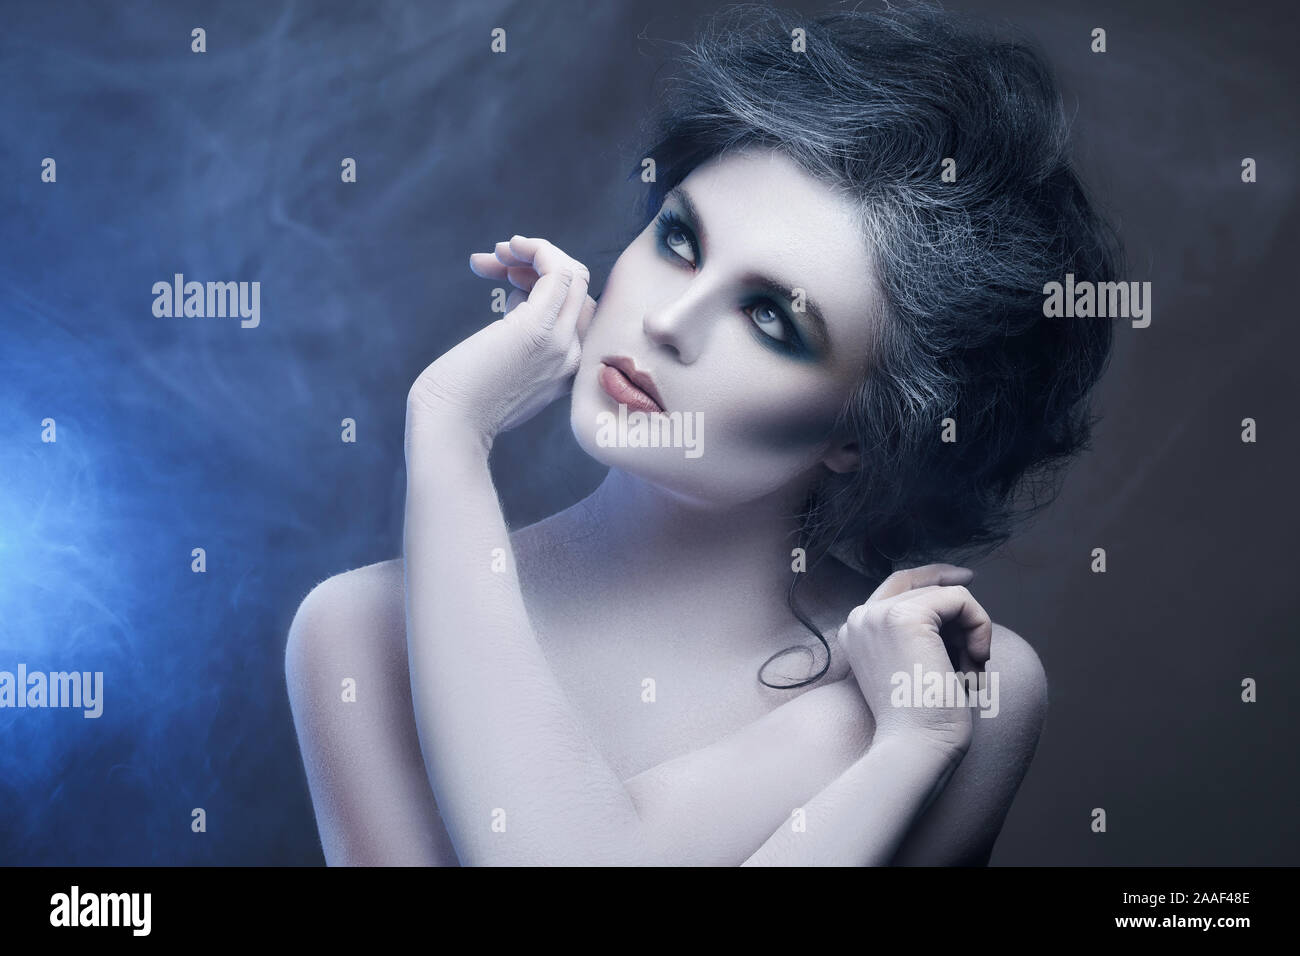 Woman With White Body Art In Creative Image Of Winter Snow Queen Or Another Sad Or Evil Character Stock Photo Alamy